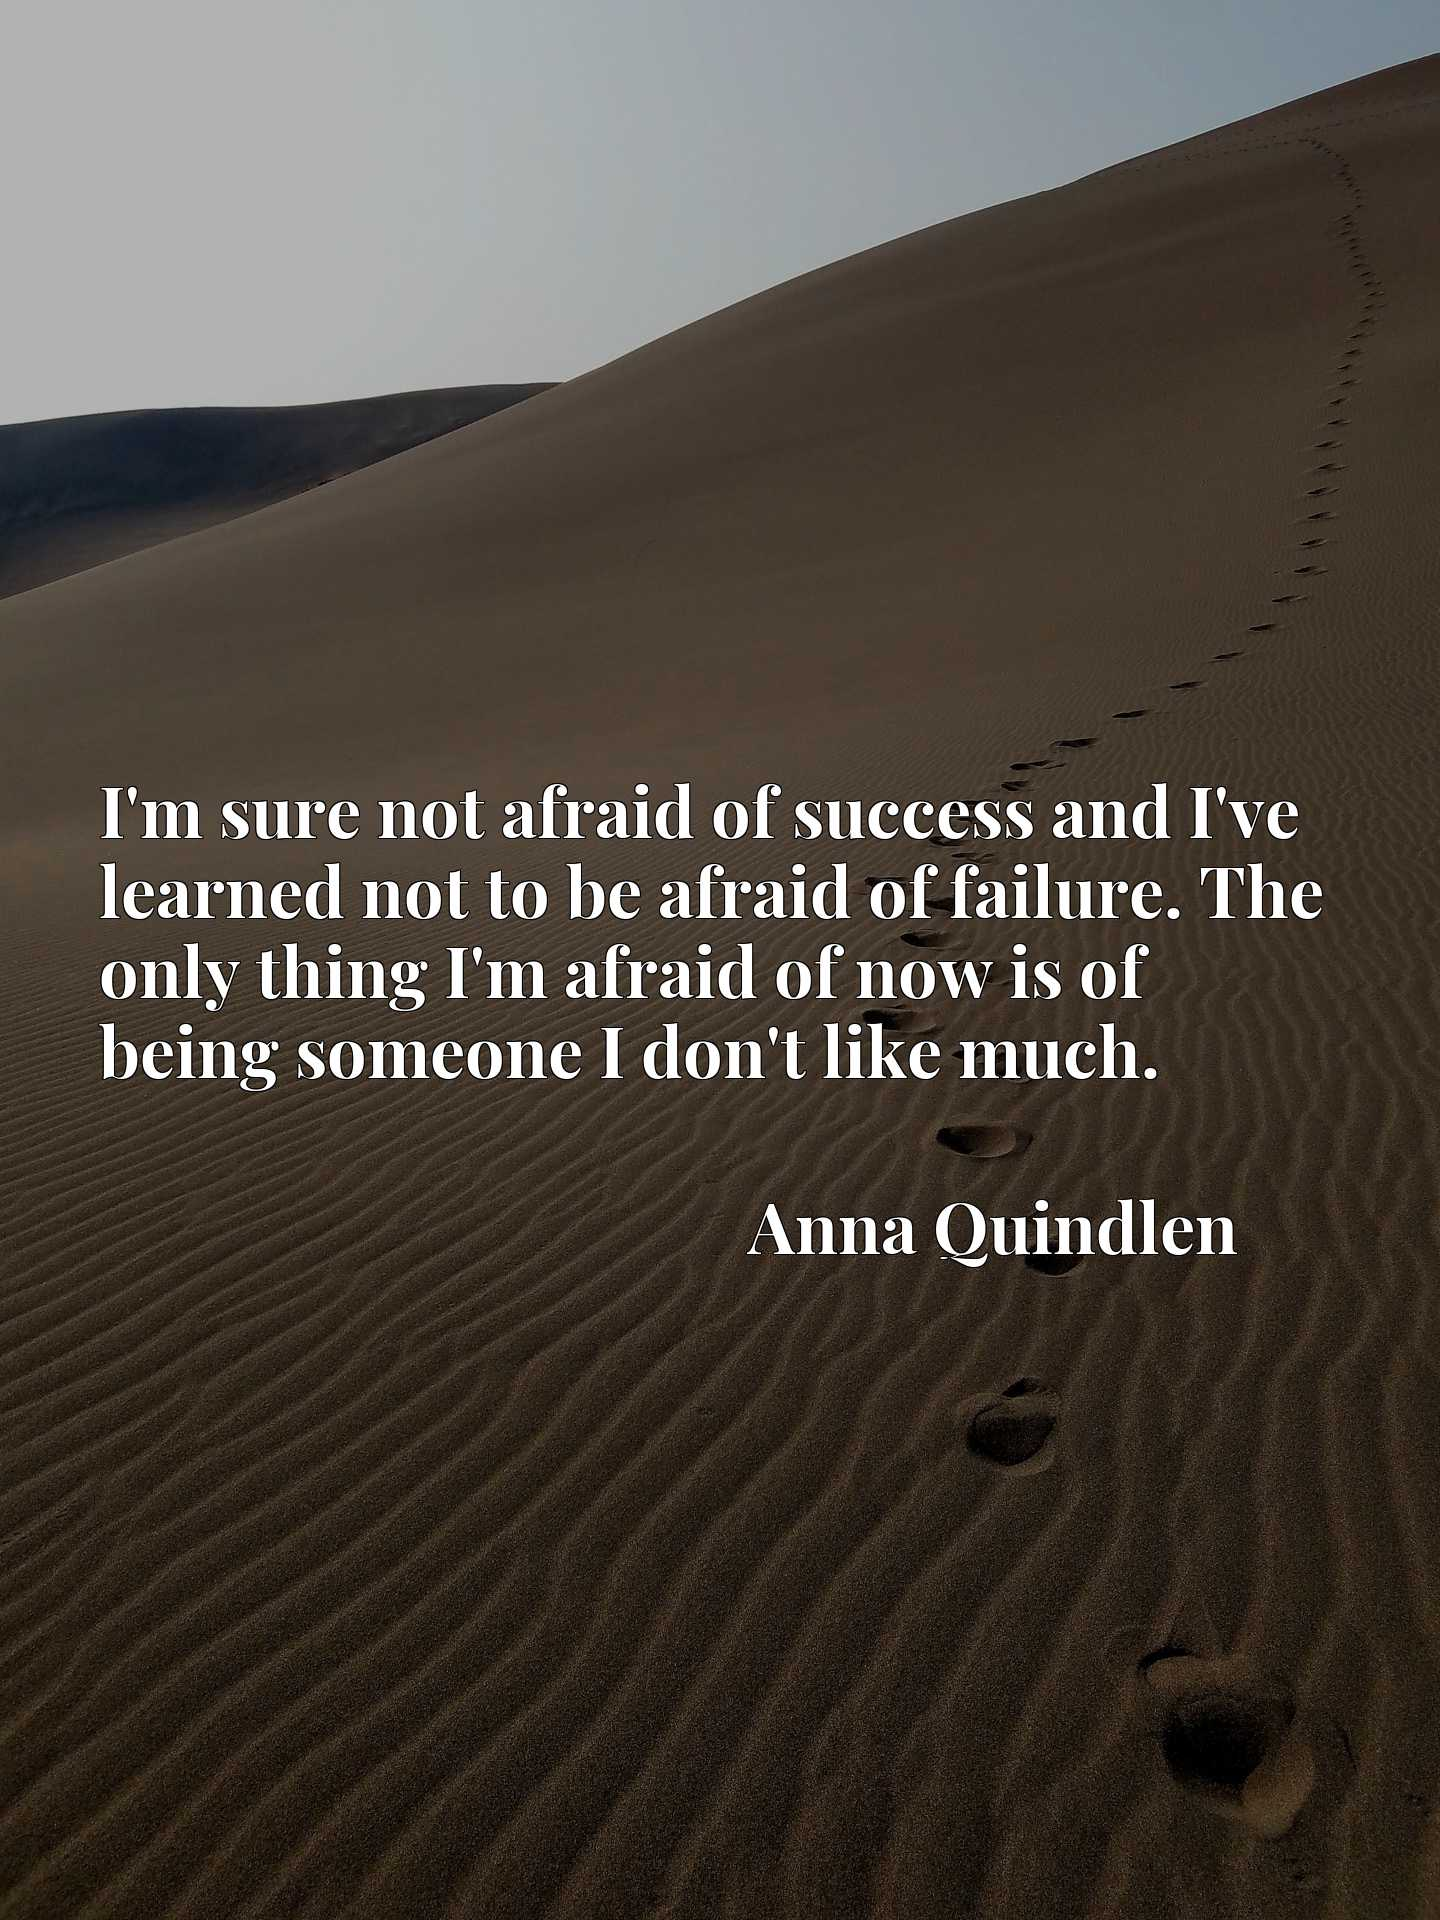 I'm sure not afraid of success and I've learned not to be afraid of failure. The only thing I'm afraid of now is of being someone I don't like much.